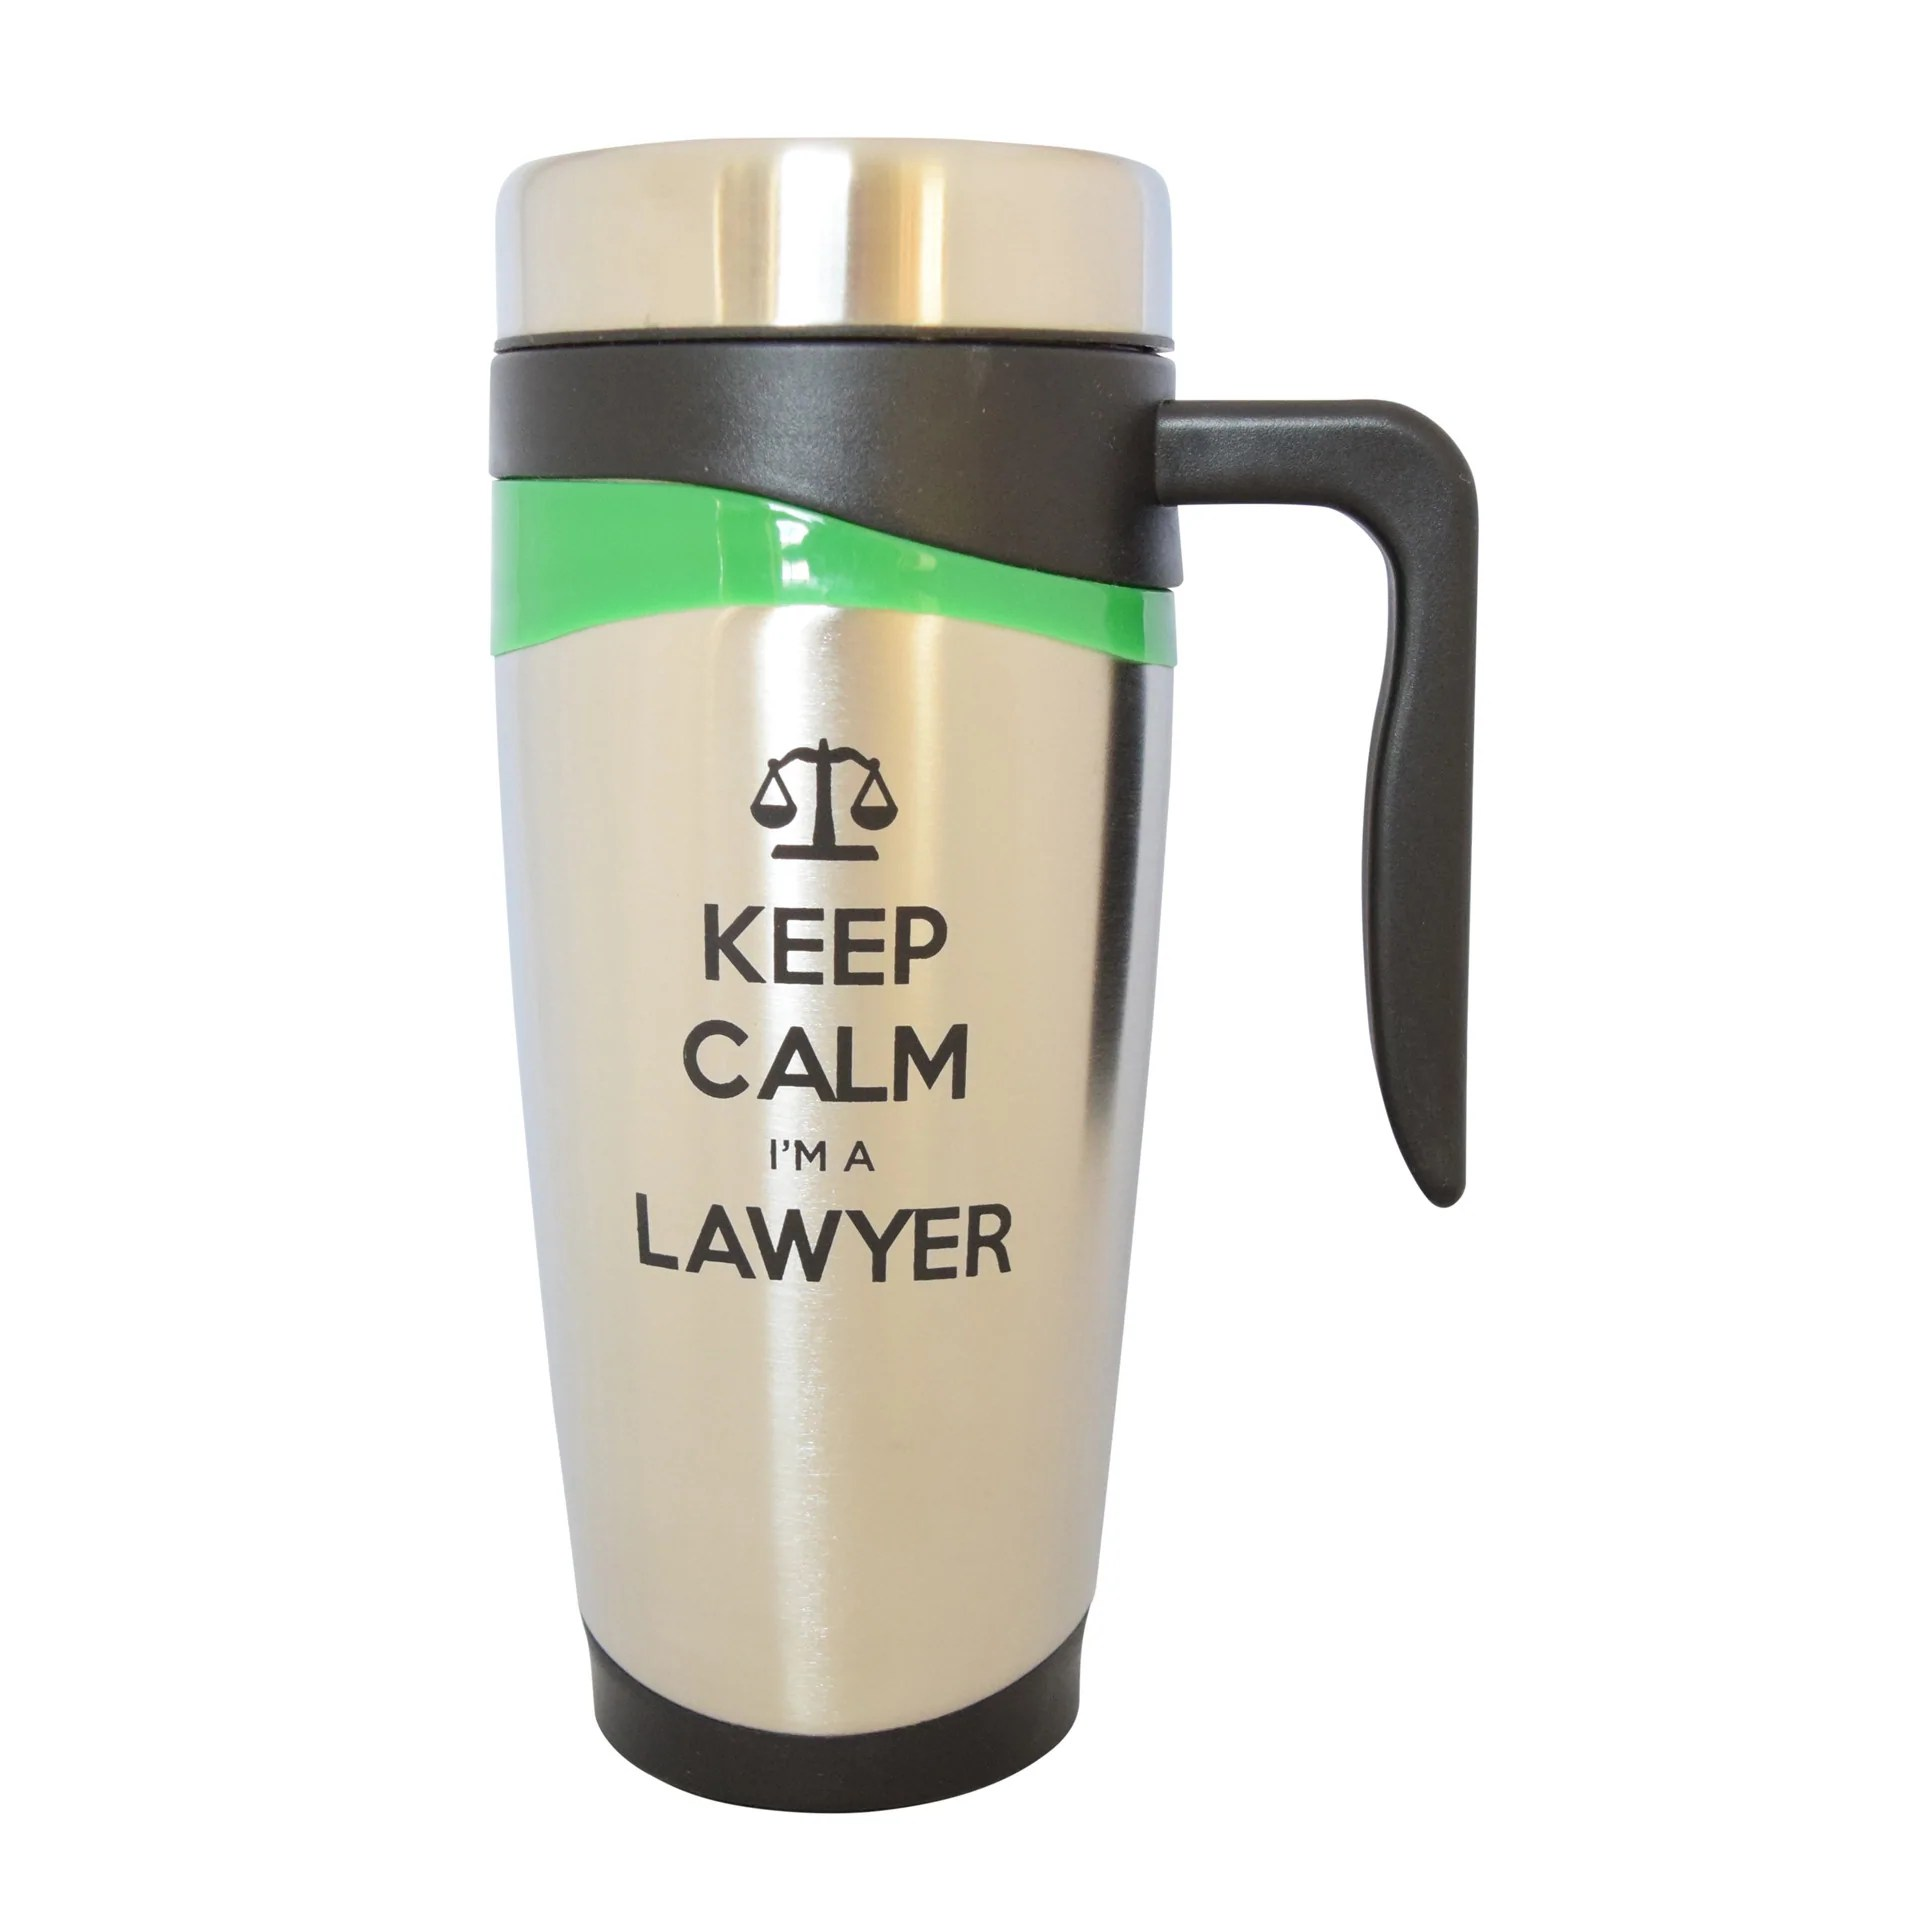 Distinctive Lawyers Australia Gifts Keep A Lawyer Stainless Steel Travel Tumbler Keep A Lawyer Stainless Steel Travel Tumbler Suck Up Gifts Gifts Lawyers Office India gifts Gifts For Lawyers